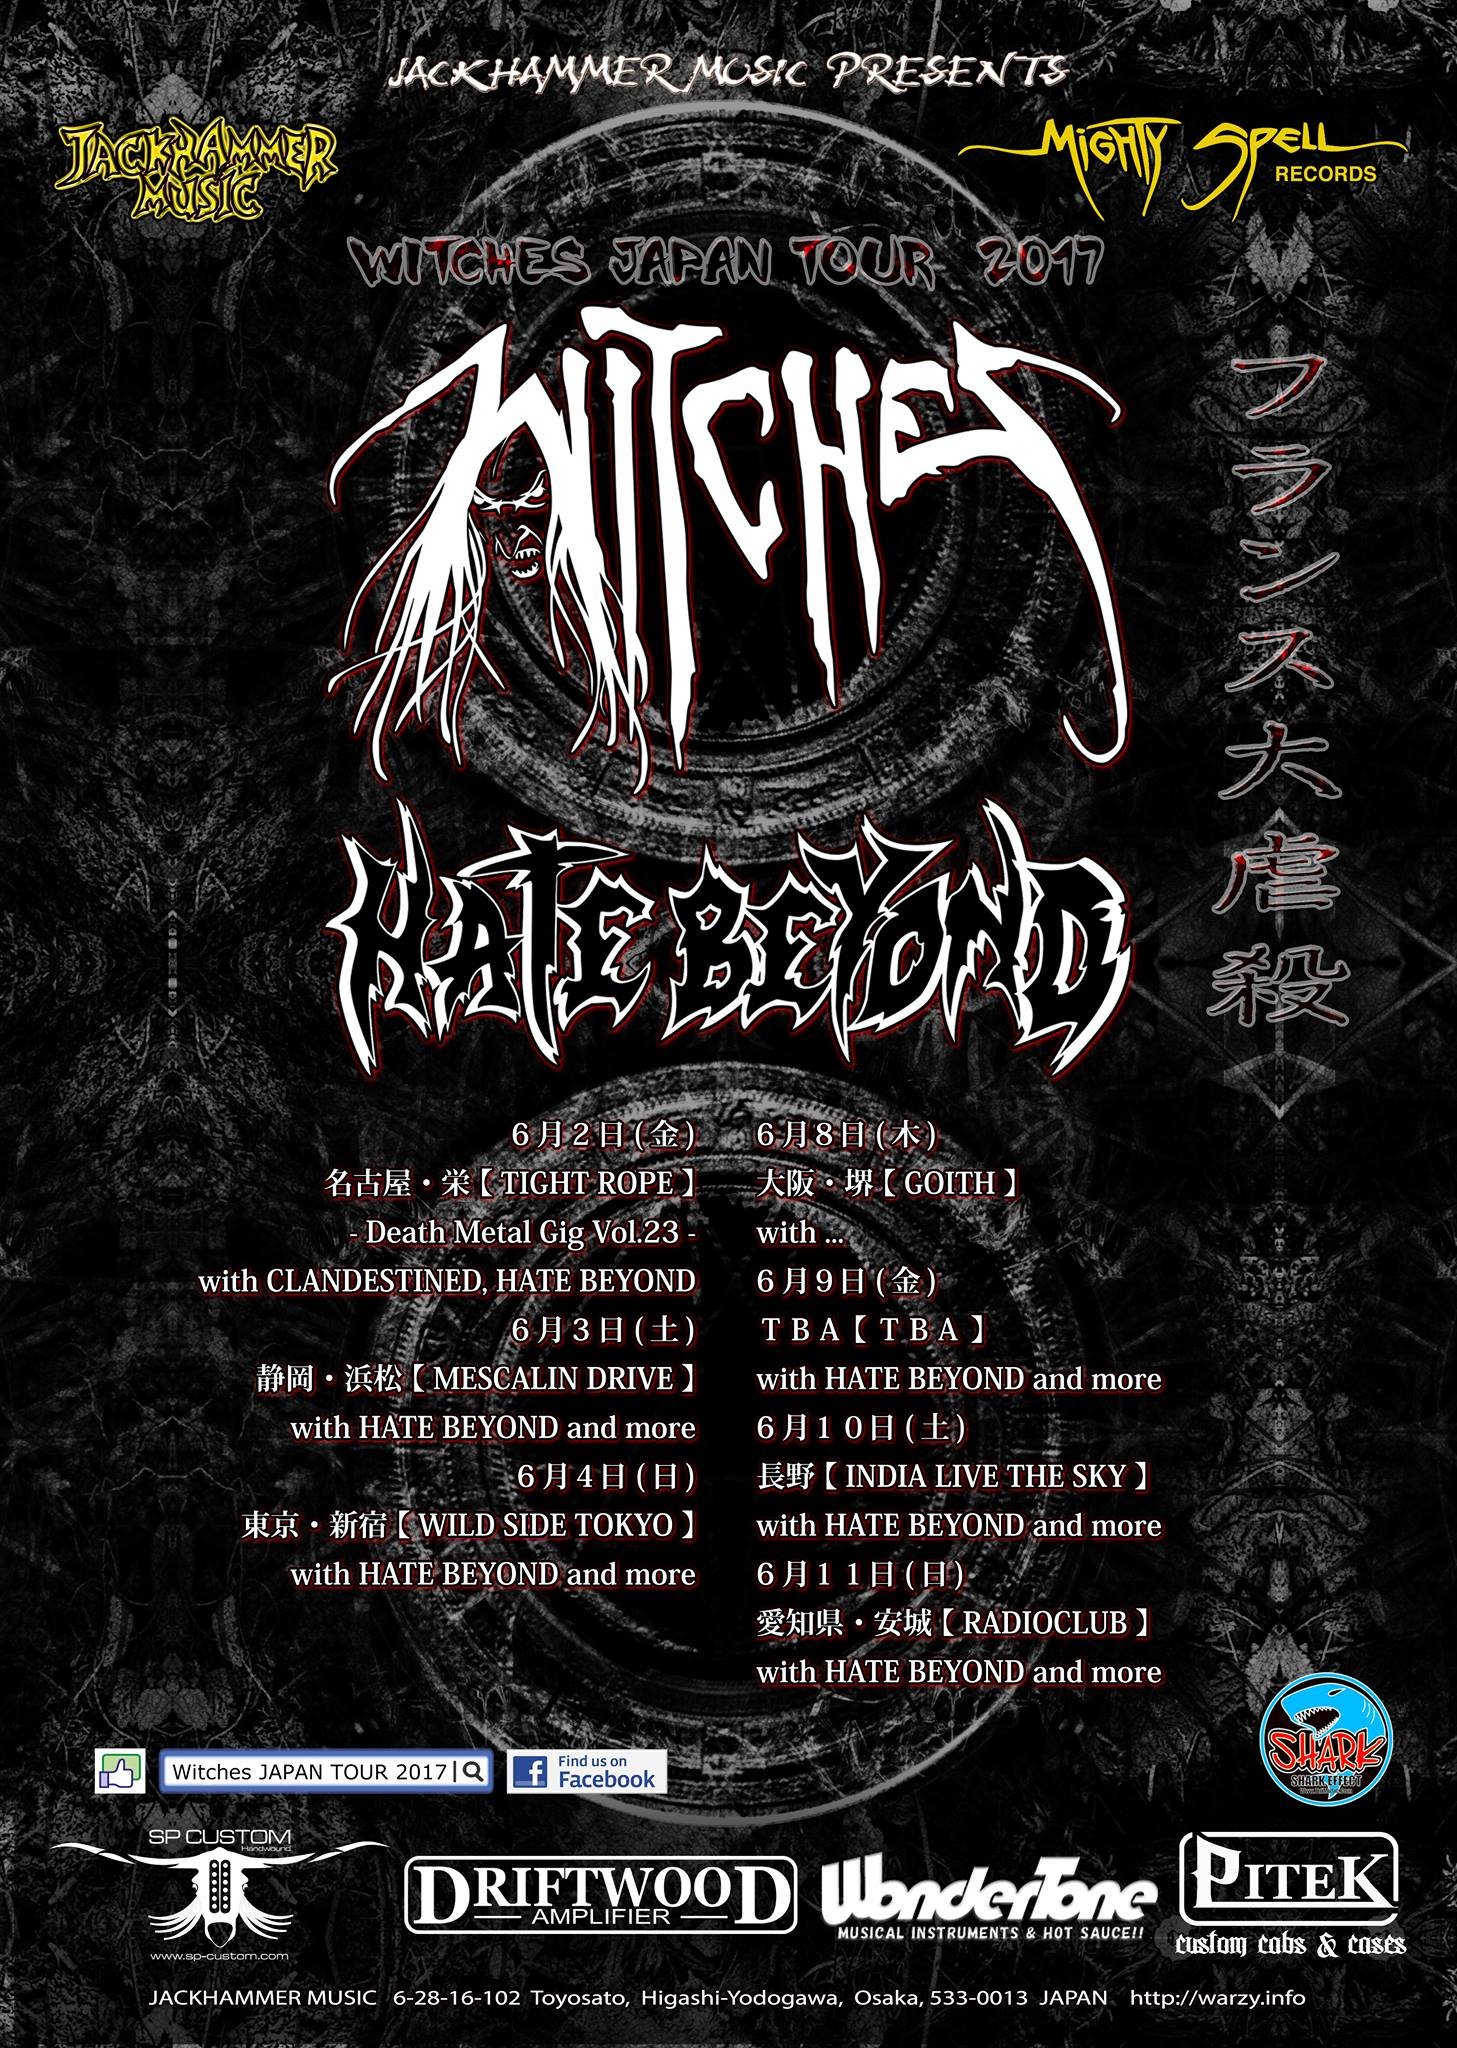 Witches flyer WITCHES + Vigilante + Raging Fury + Terror Squad + Hate Beyond + PornoState @ WITCHES JAPAN TOUR 2017 東京 新宿 Wild side Tokyo (Shinjyuku, TOKYO) Tokyo, JAPAN